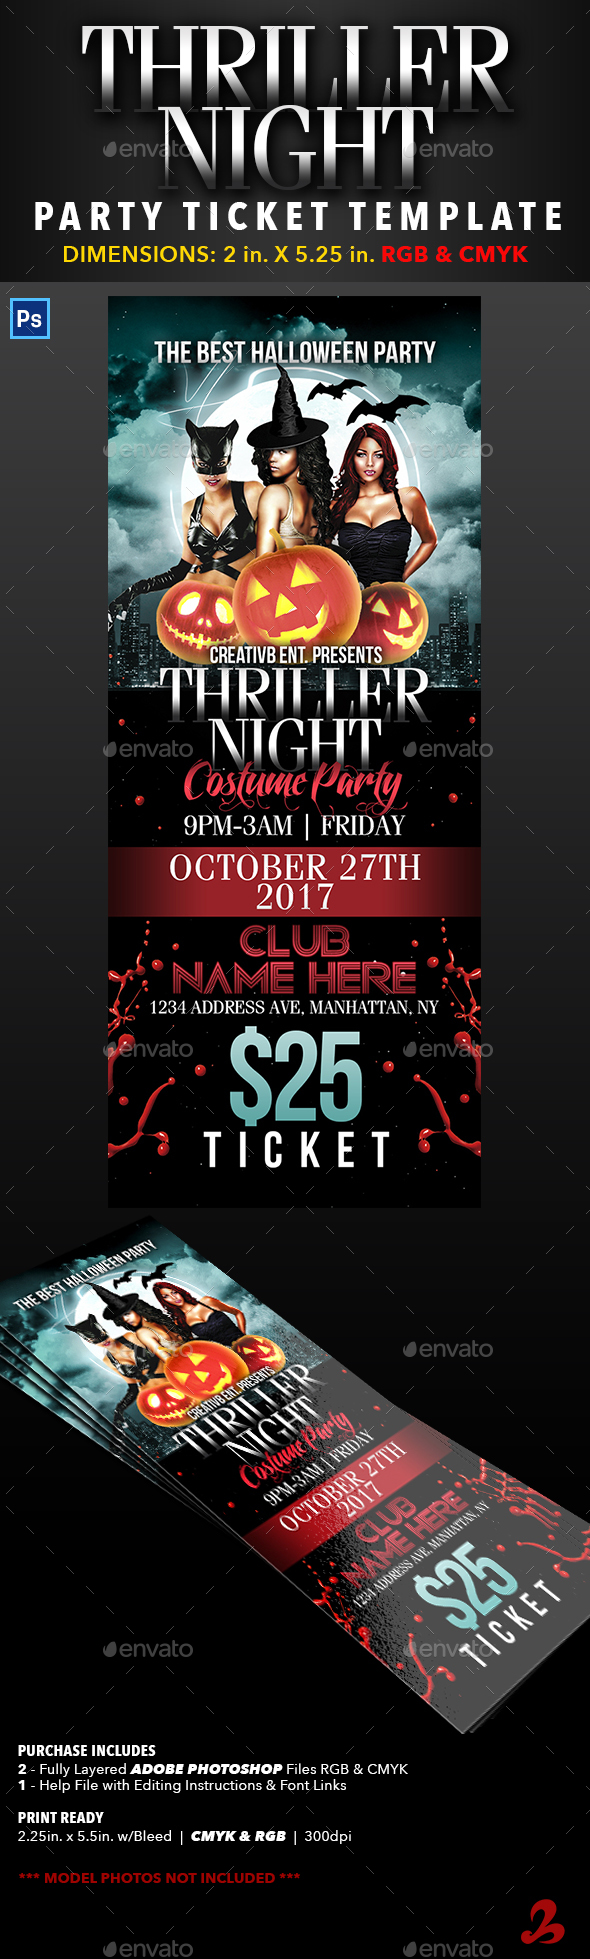 Thriller Night Halloween Party Ticket Template - Events Flyers